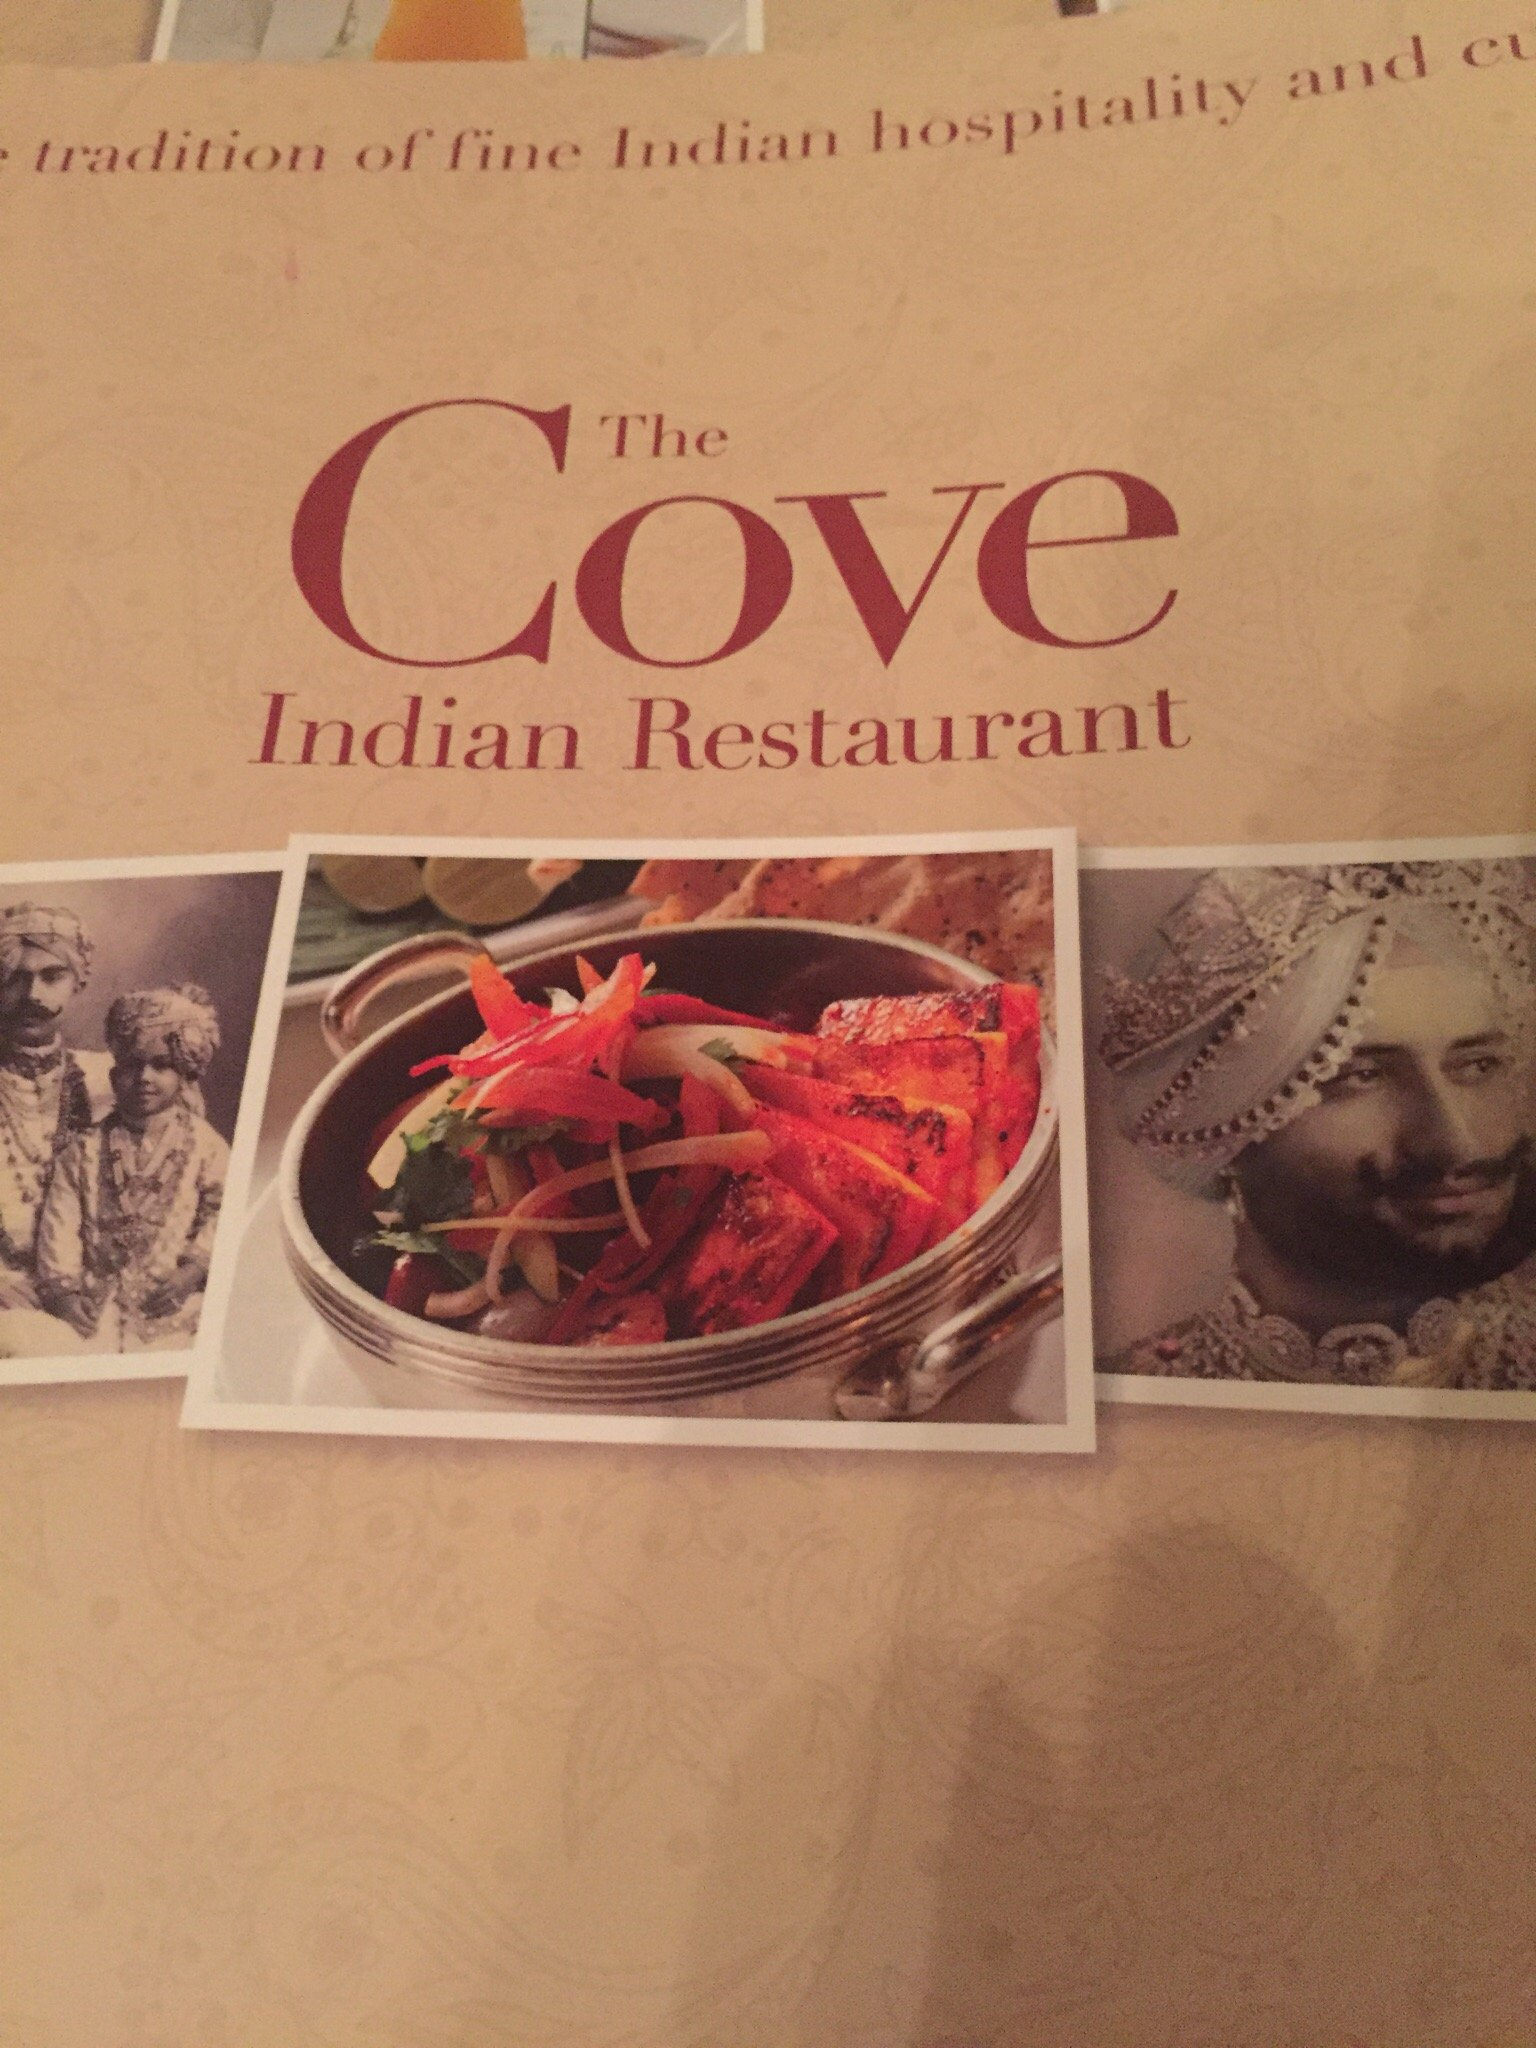 The Cove Indian Restaurant